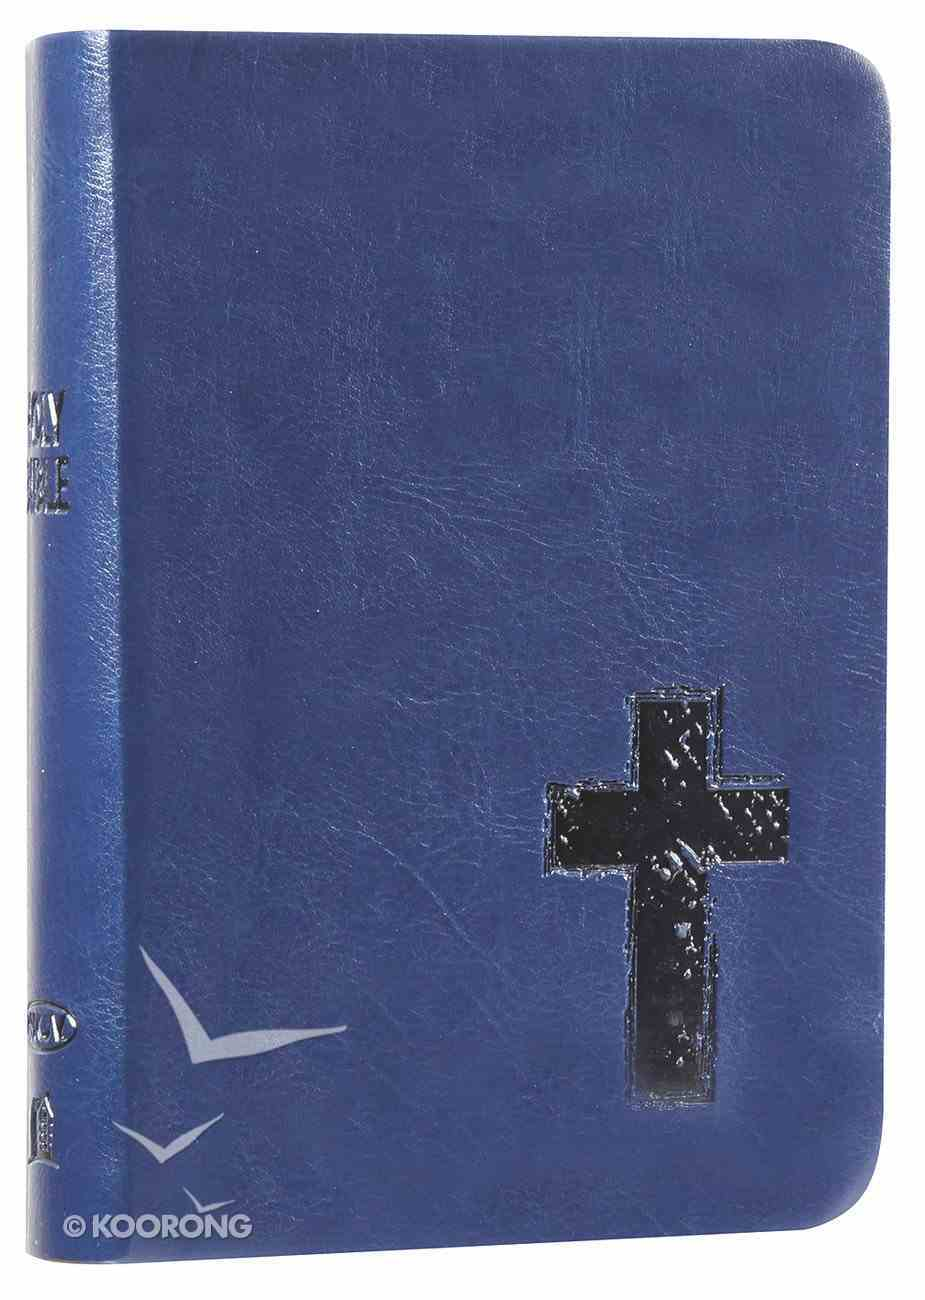 NKJV Compact Large Print Reference Bible Royal Blue (Red Letter Edition) (Essentials) Imitation Leather